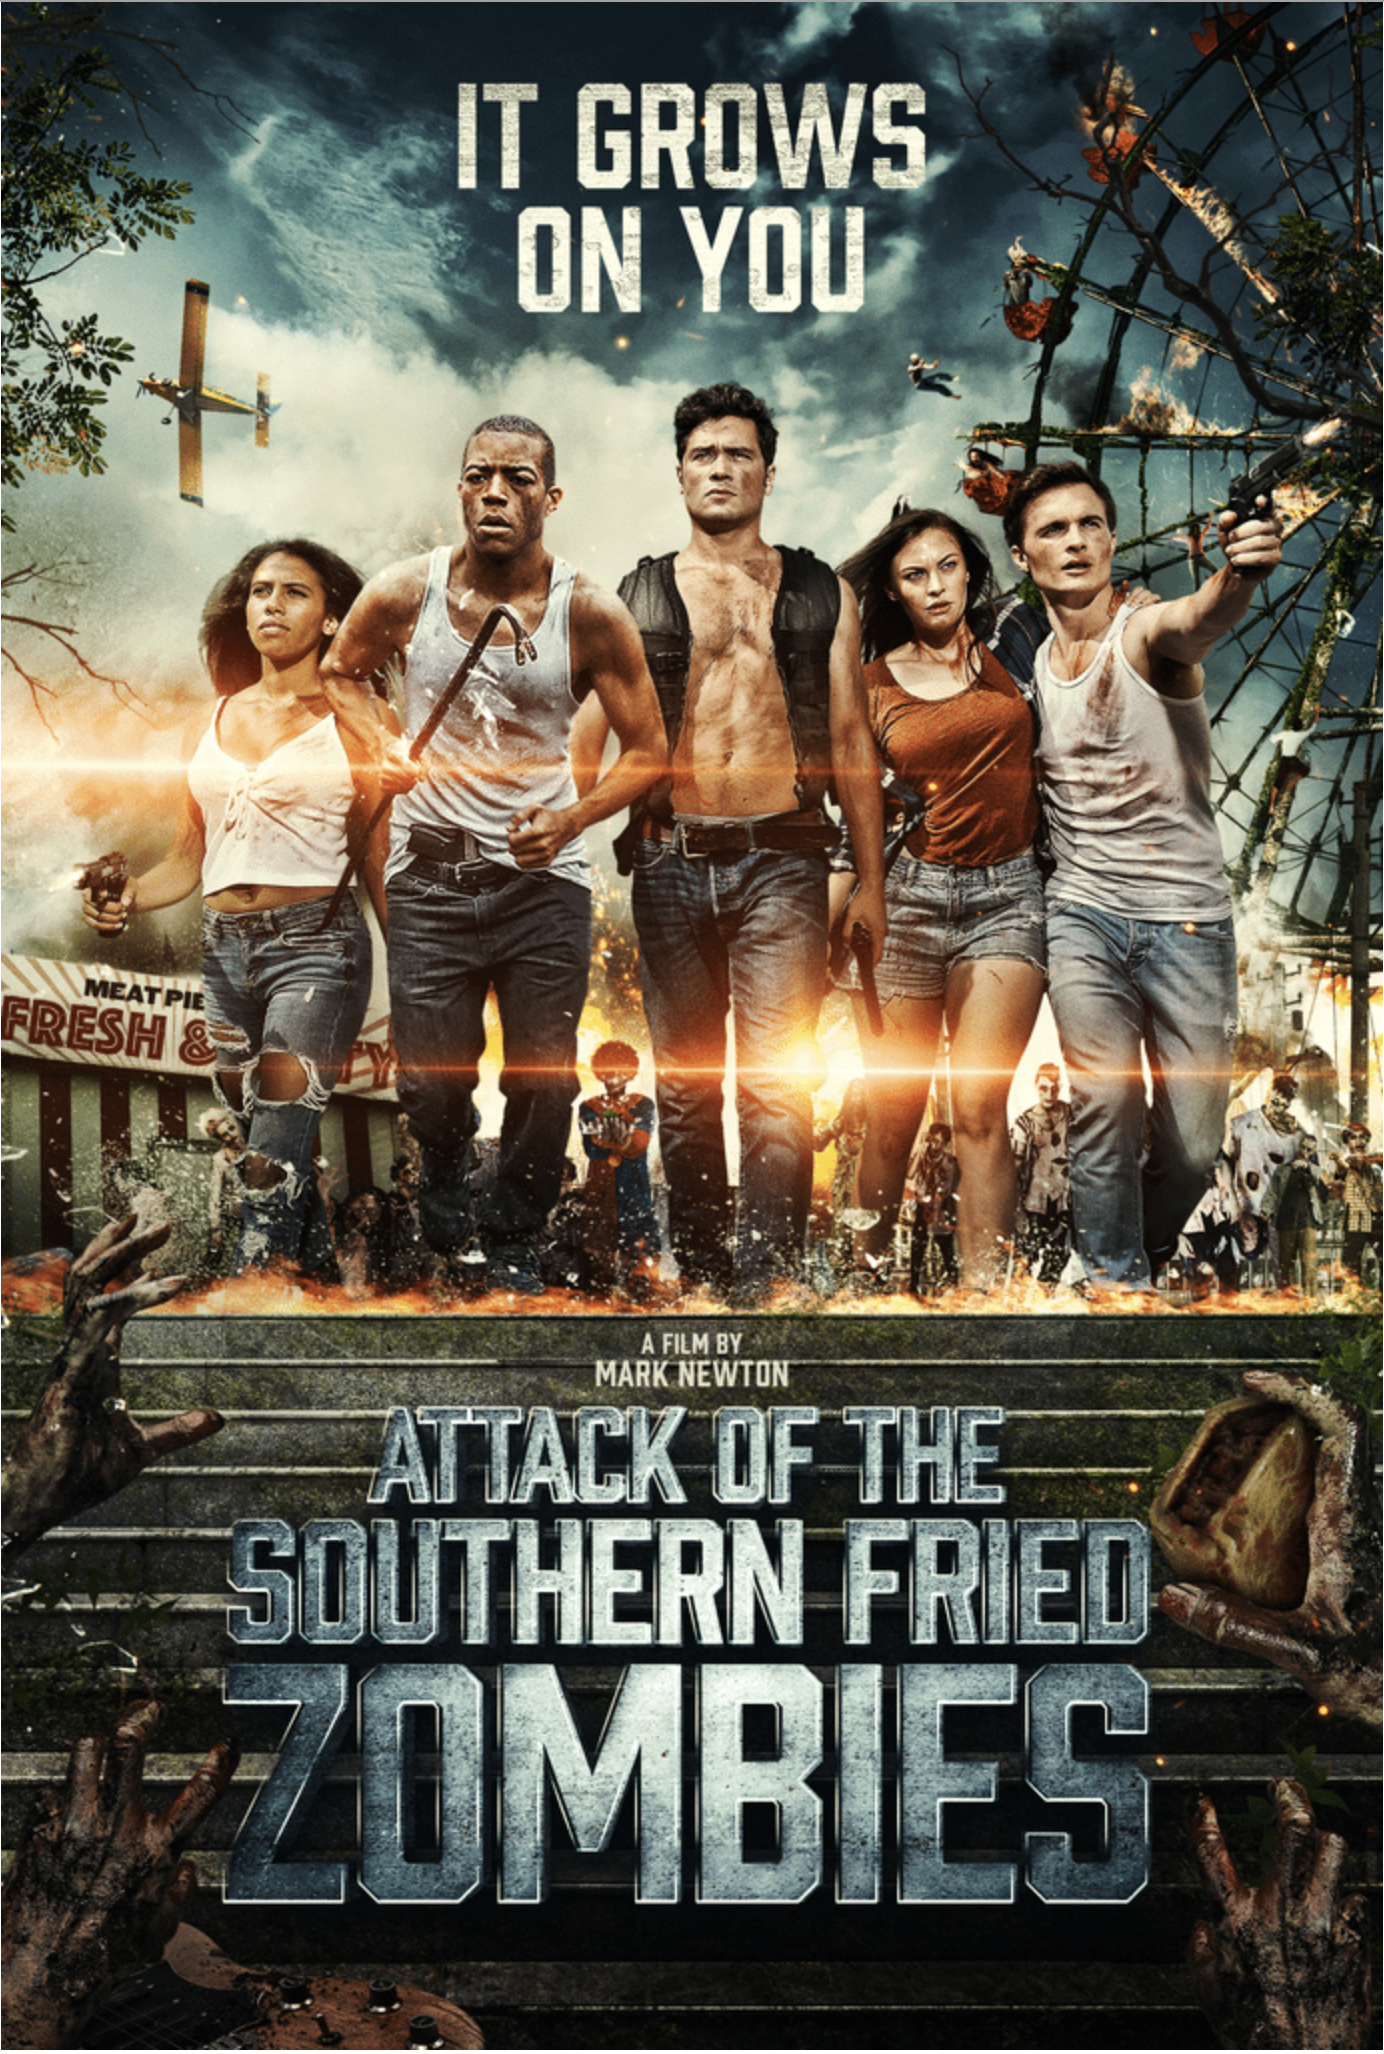 Attack Of The Southern Fried Zombies - Poster